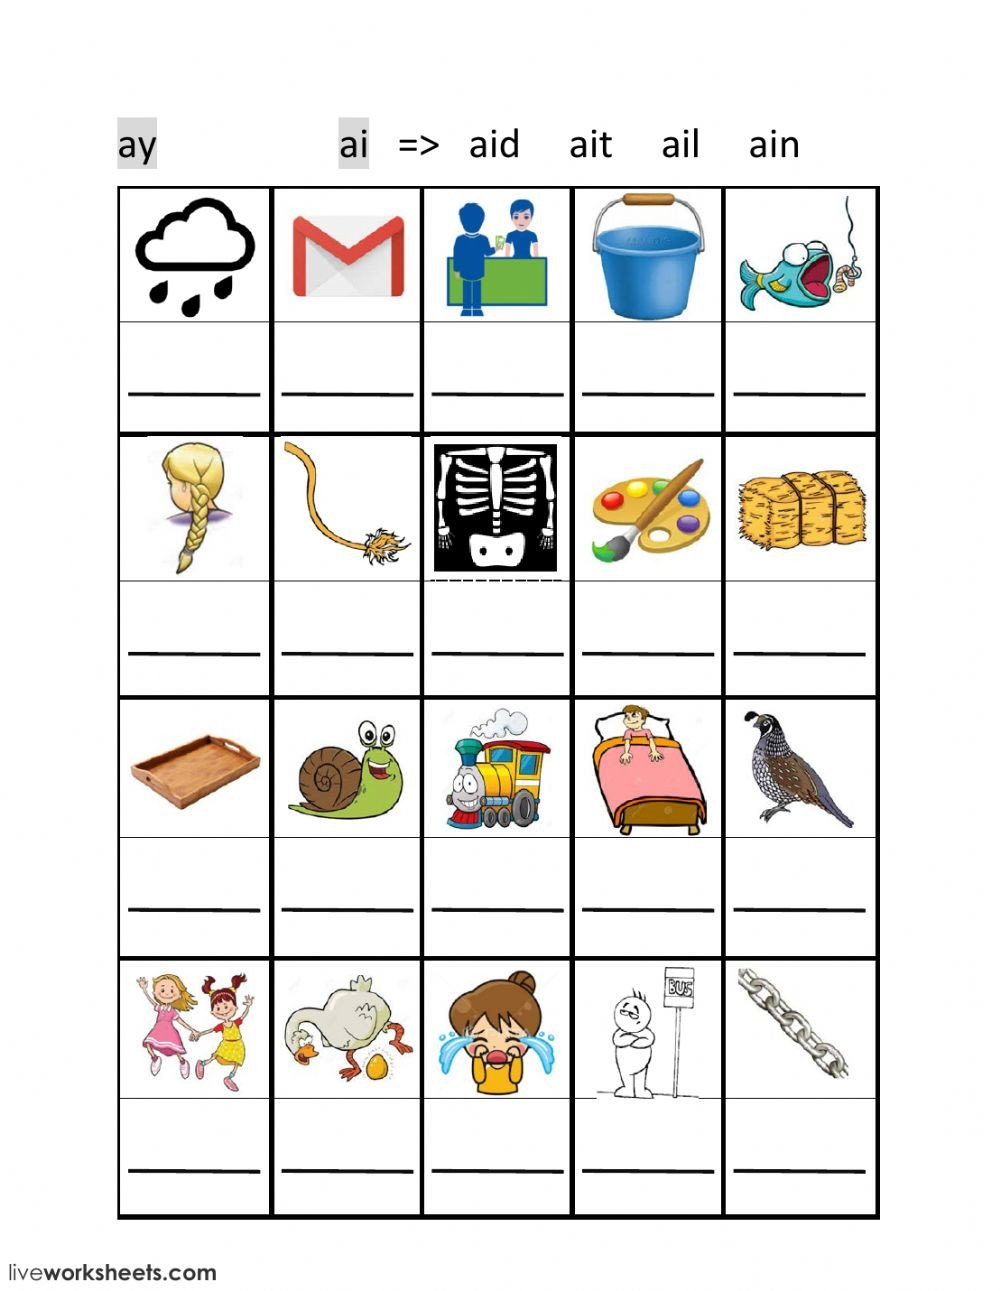 Ai Phonics Worksheet Ai Ay Phonics Interactive Worksheet